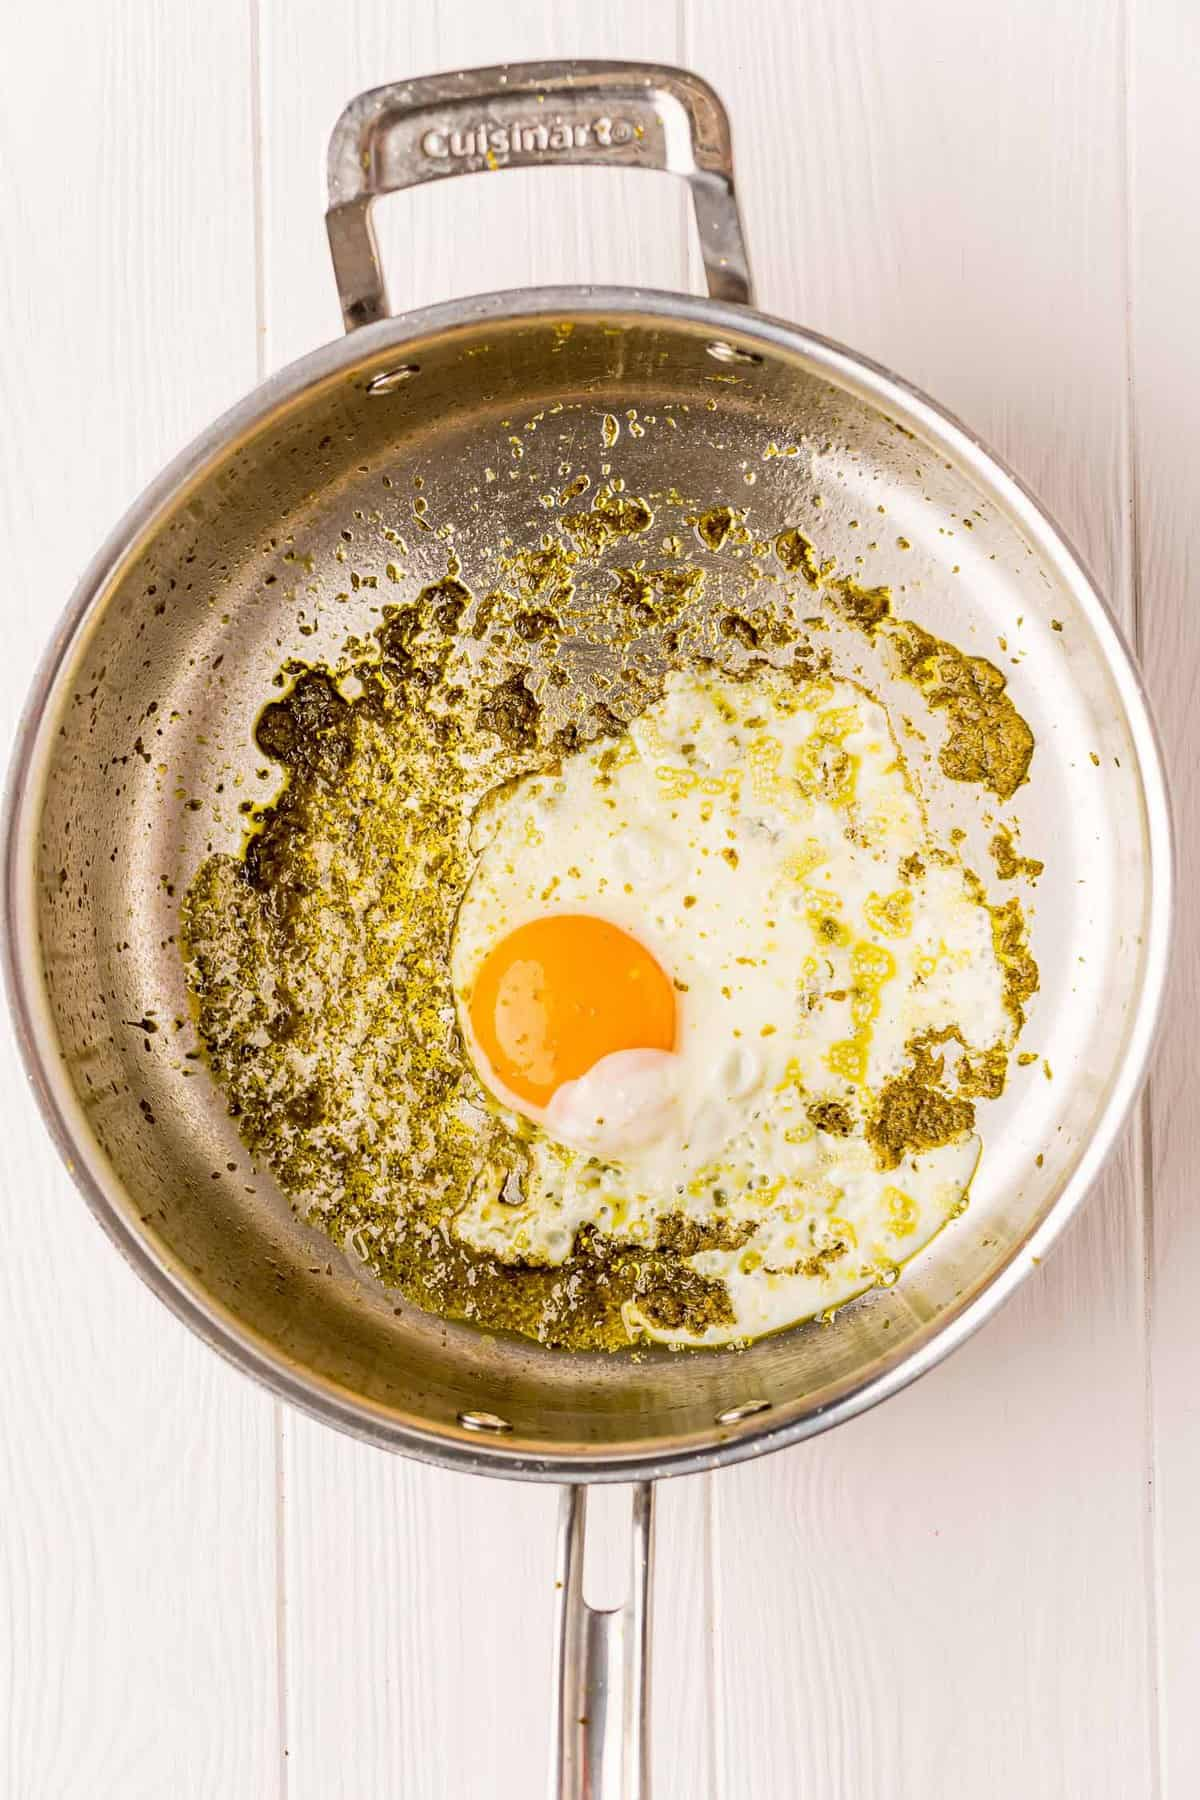 Egg in frying pan with pesto.